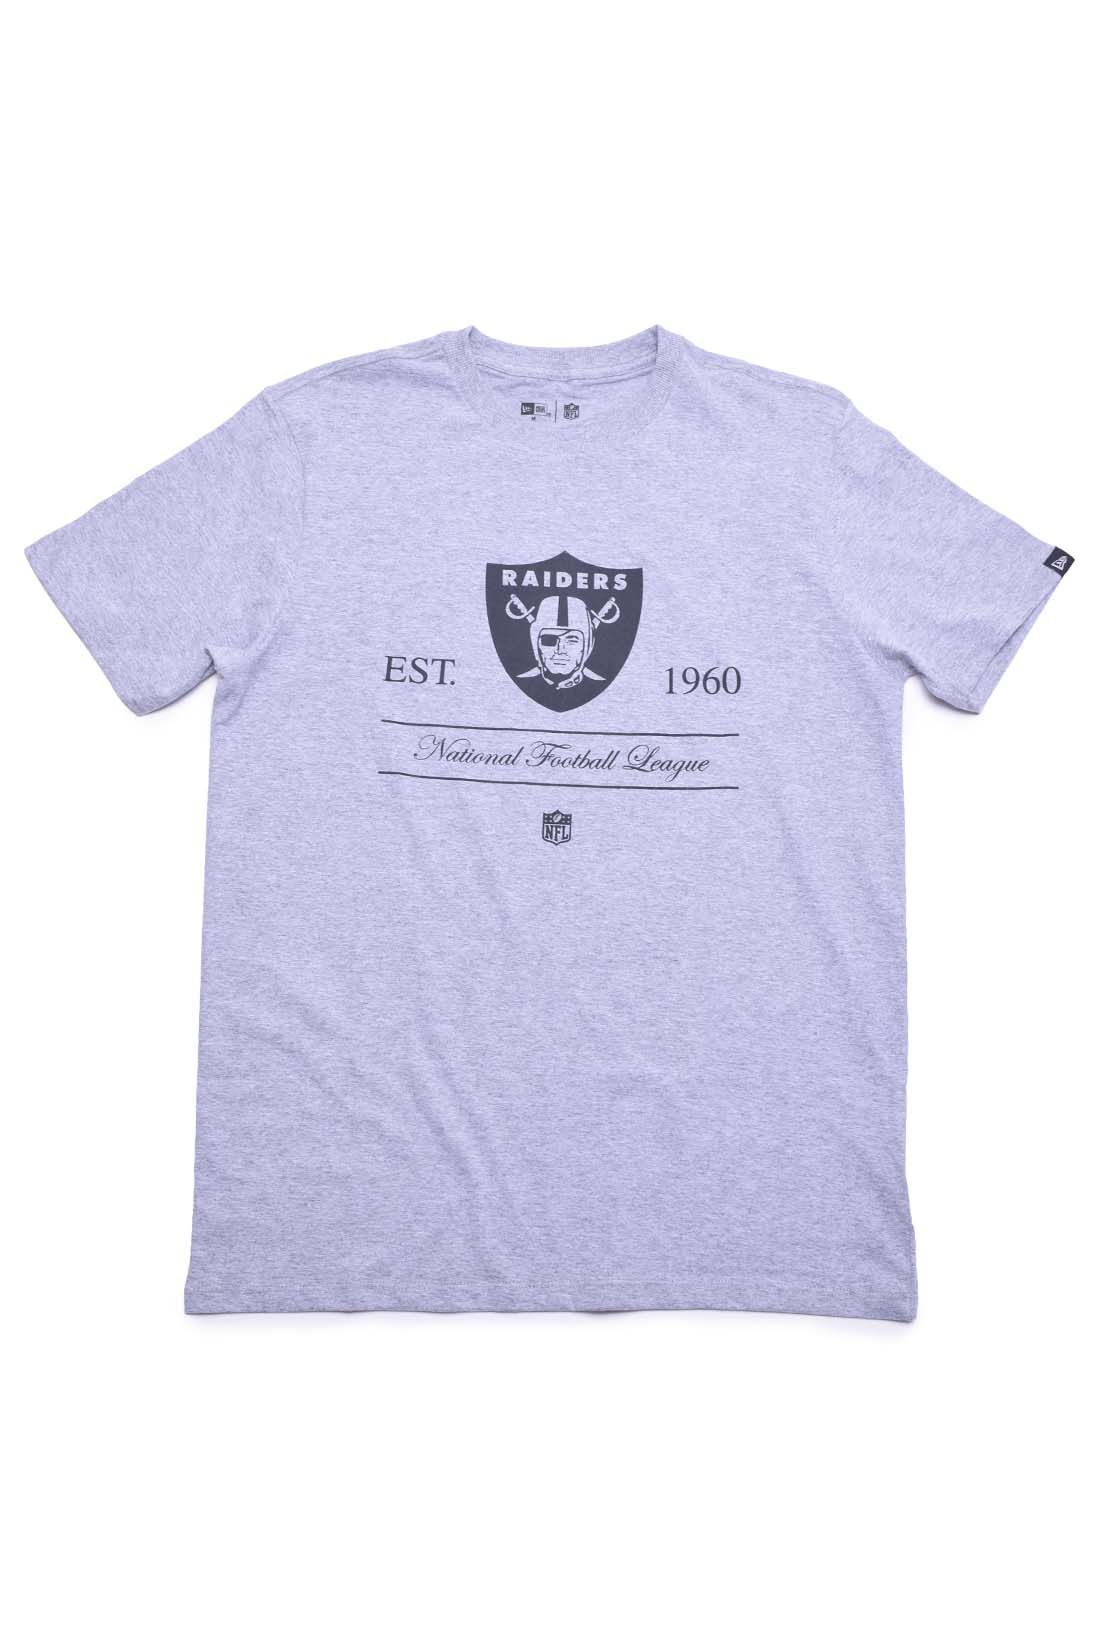 Camiseta National Footboll League Raiders NFL New Era